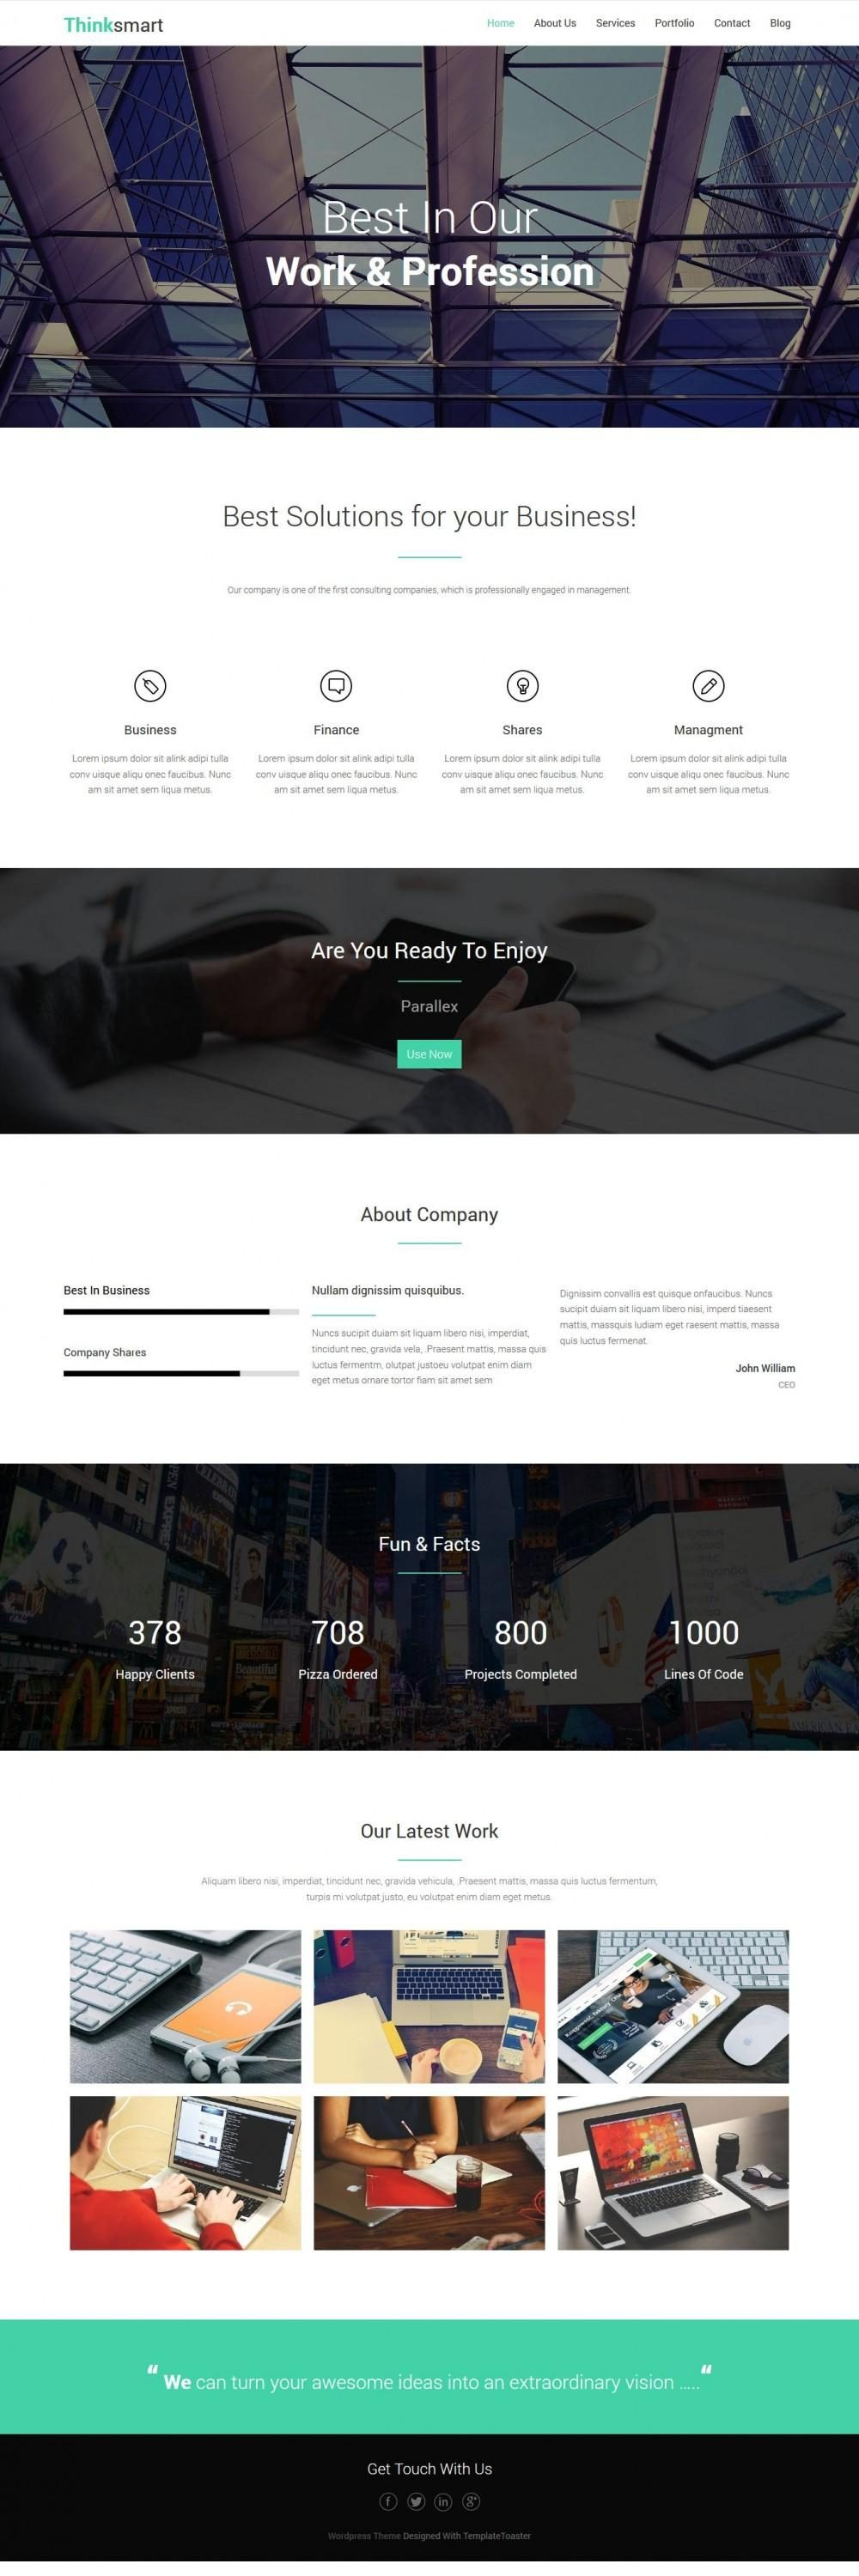 Thinksmart – Business Solutions Drupal Theme